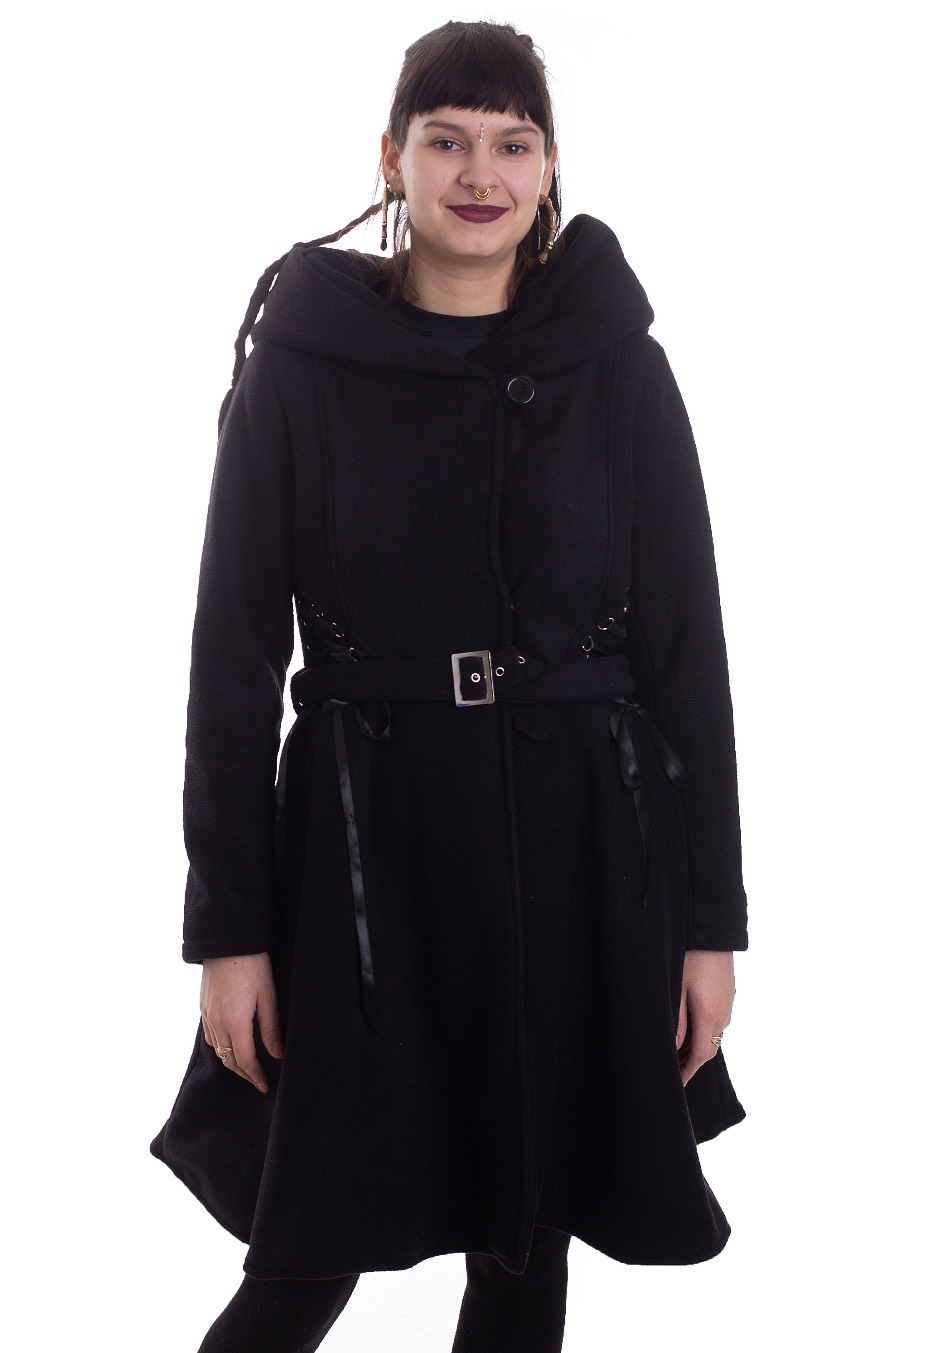 Jacken - Vixxsin New Moon Black Jacken  - Onlineshop IMPERICON